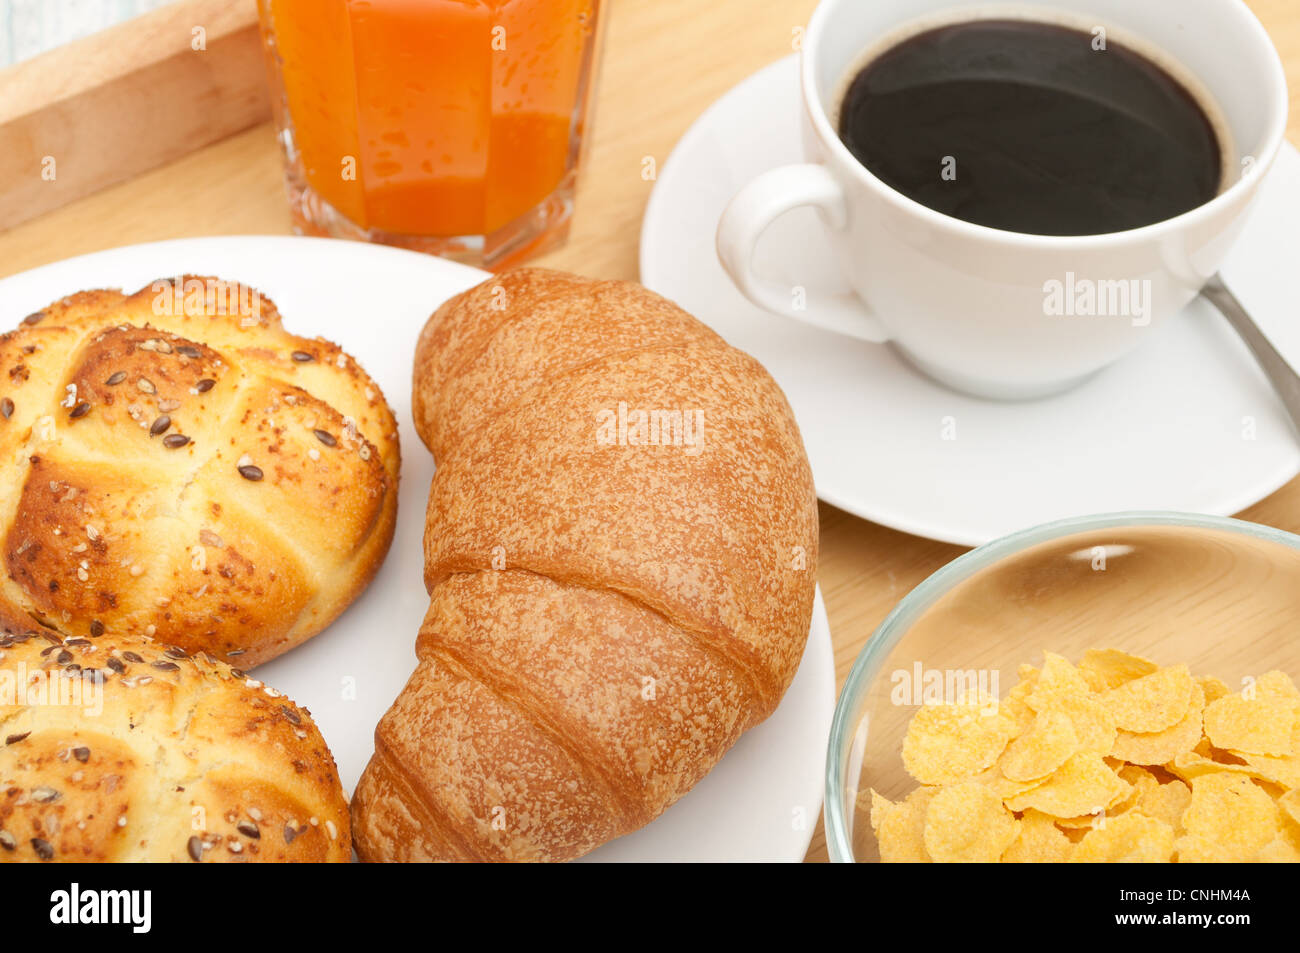 fr hst ck im bett cornflakes kaffee croissant orangensaft kaffee und br tchen stockfoto. Black Bedroom Furniture Sets. Home Design Ideas